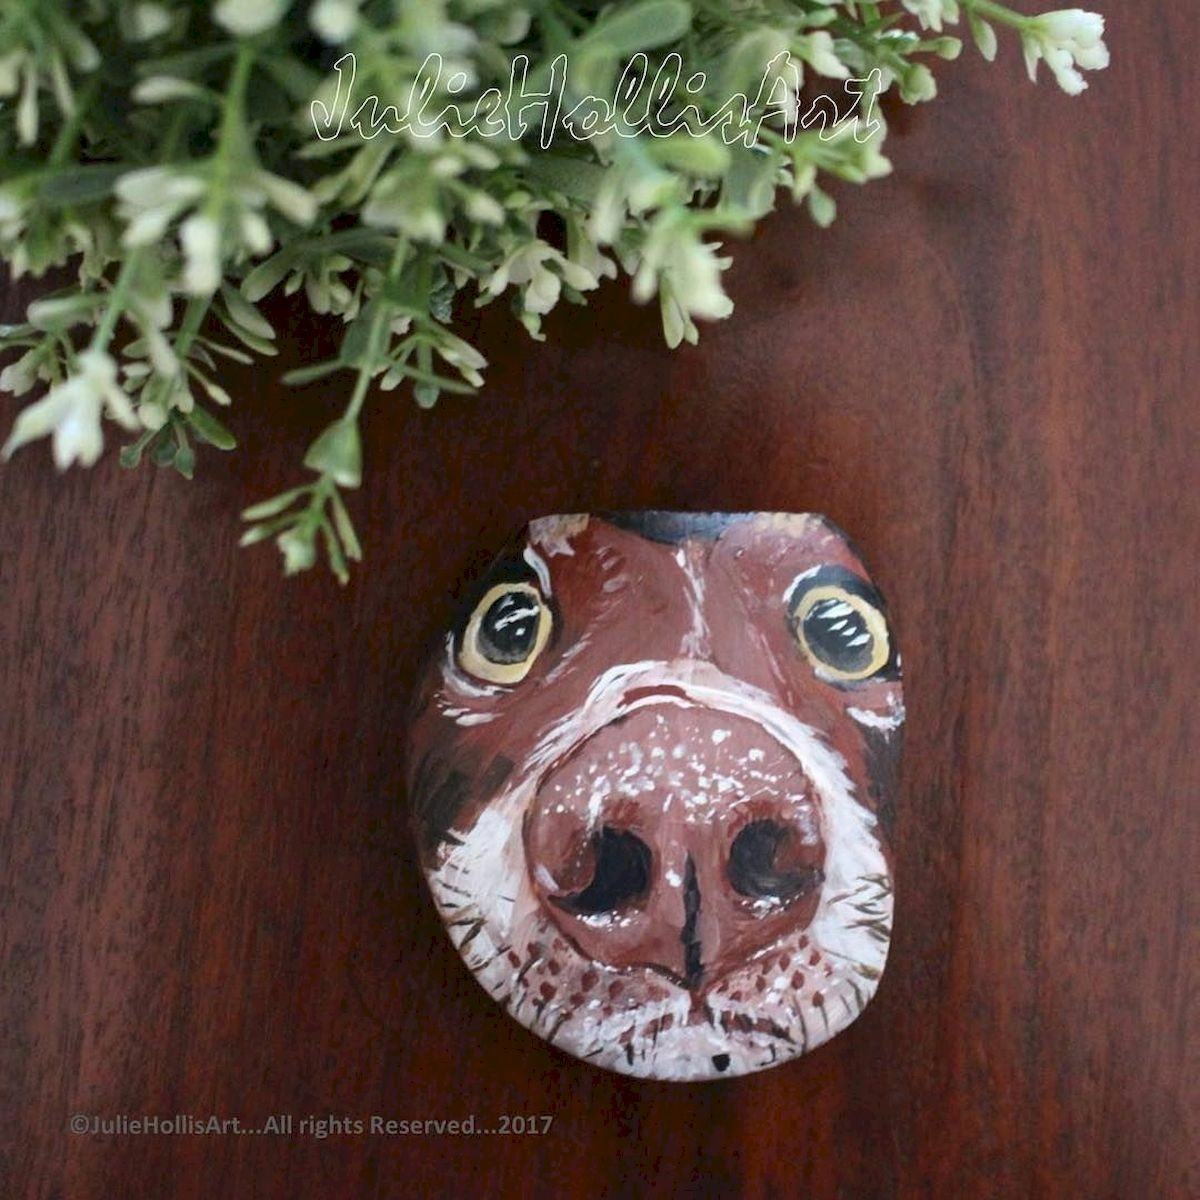 40 Favorite DIY Painted Rocks Animals Dogs for Summer Ideas (36)